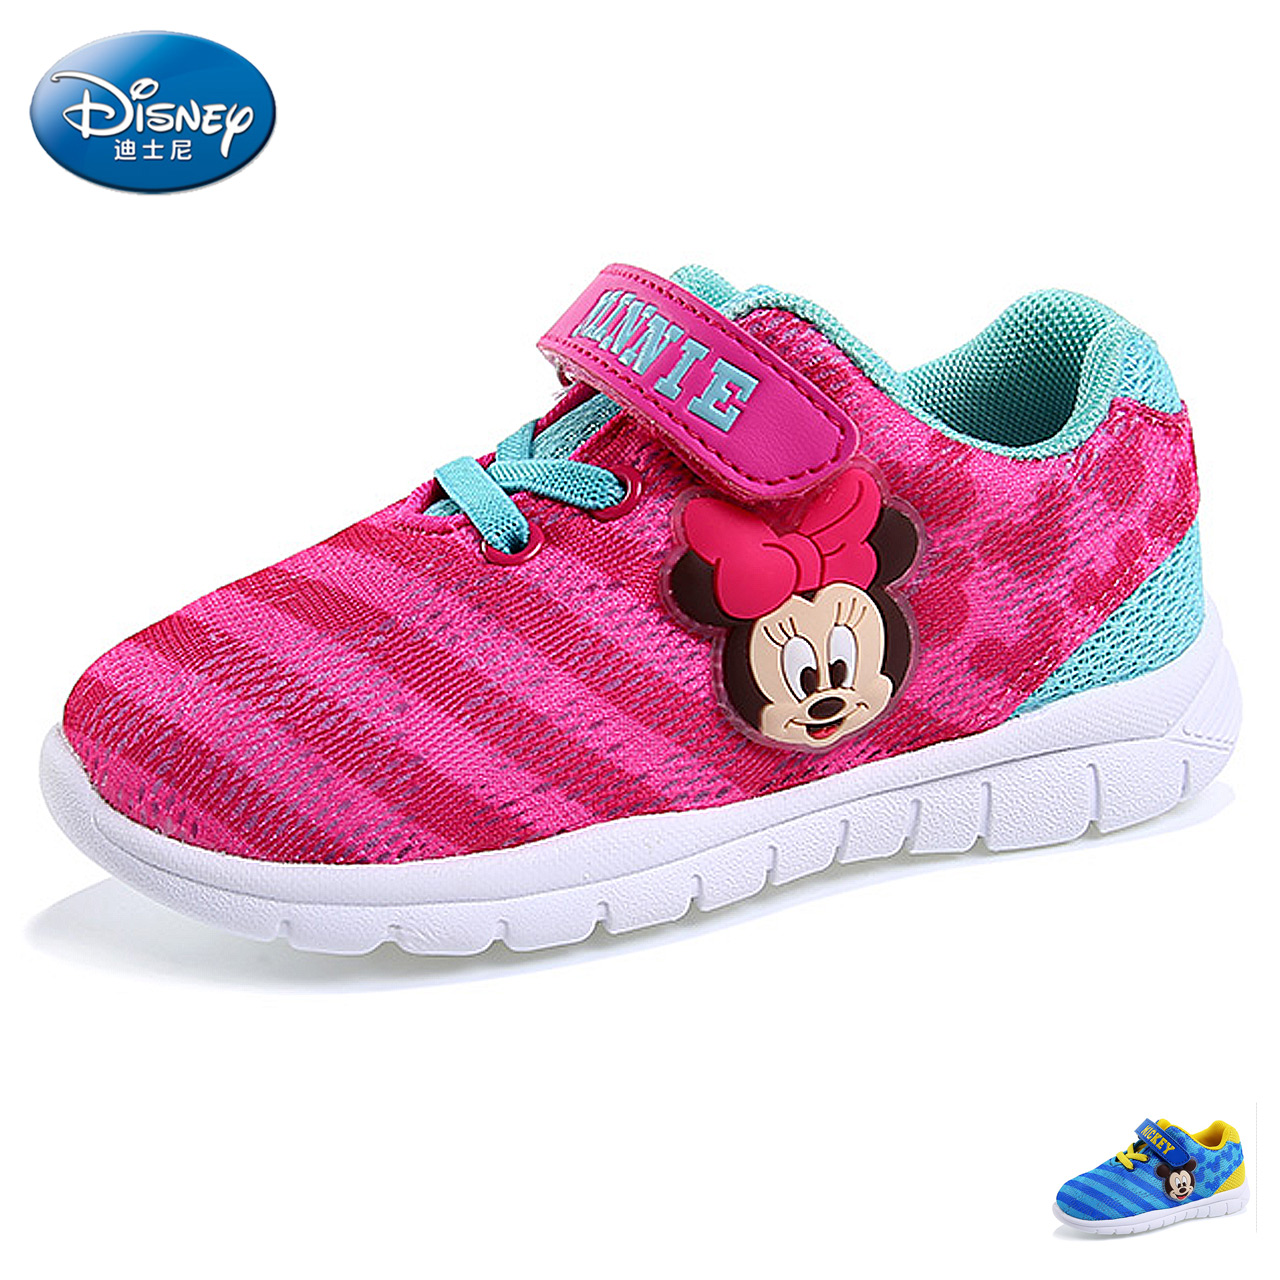 Disney children's shoes children's sports shoes boys shoes girls shoes 2016 autumn mickey casual mesh shoes shipped move